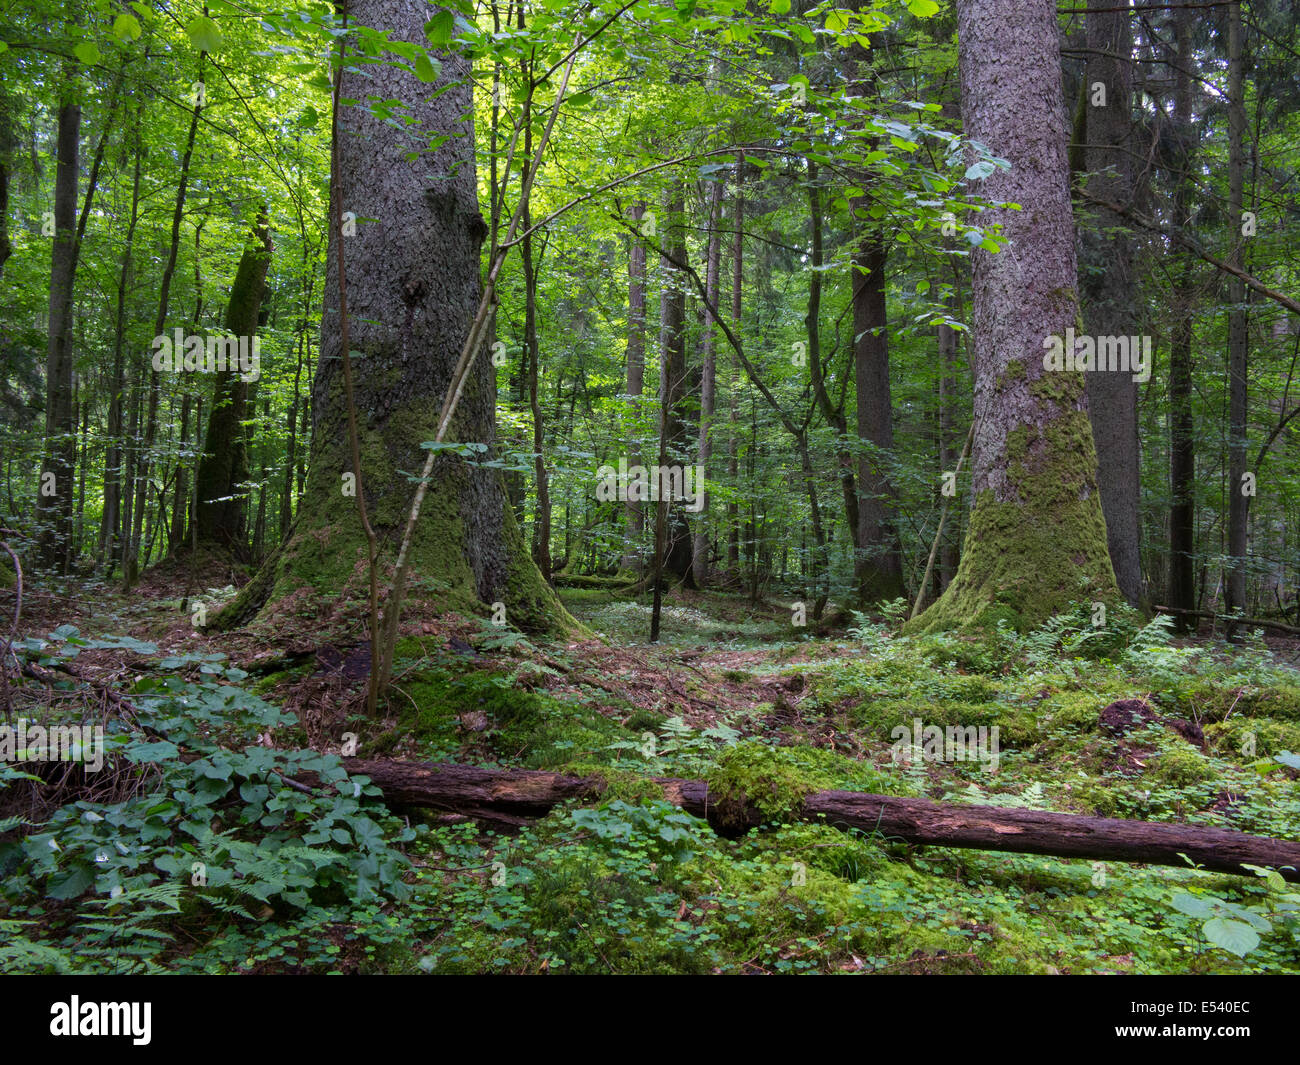 Monumental old spruces against fresh green deciduous background in summertime stand of Bialowieza Forest - Stock Image